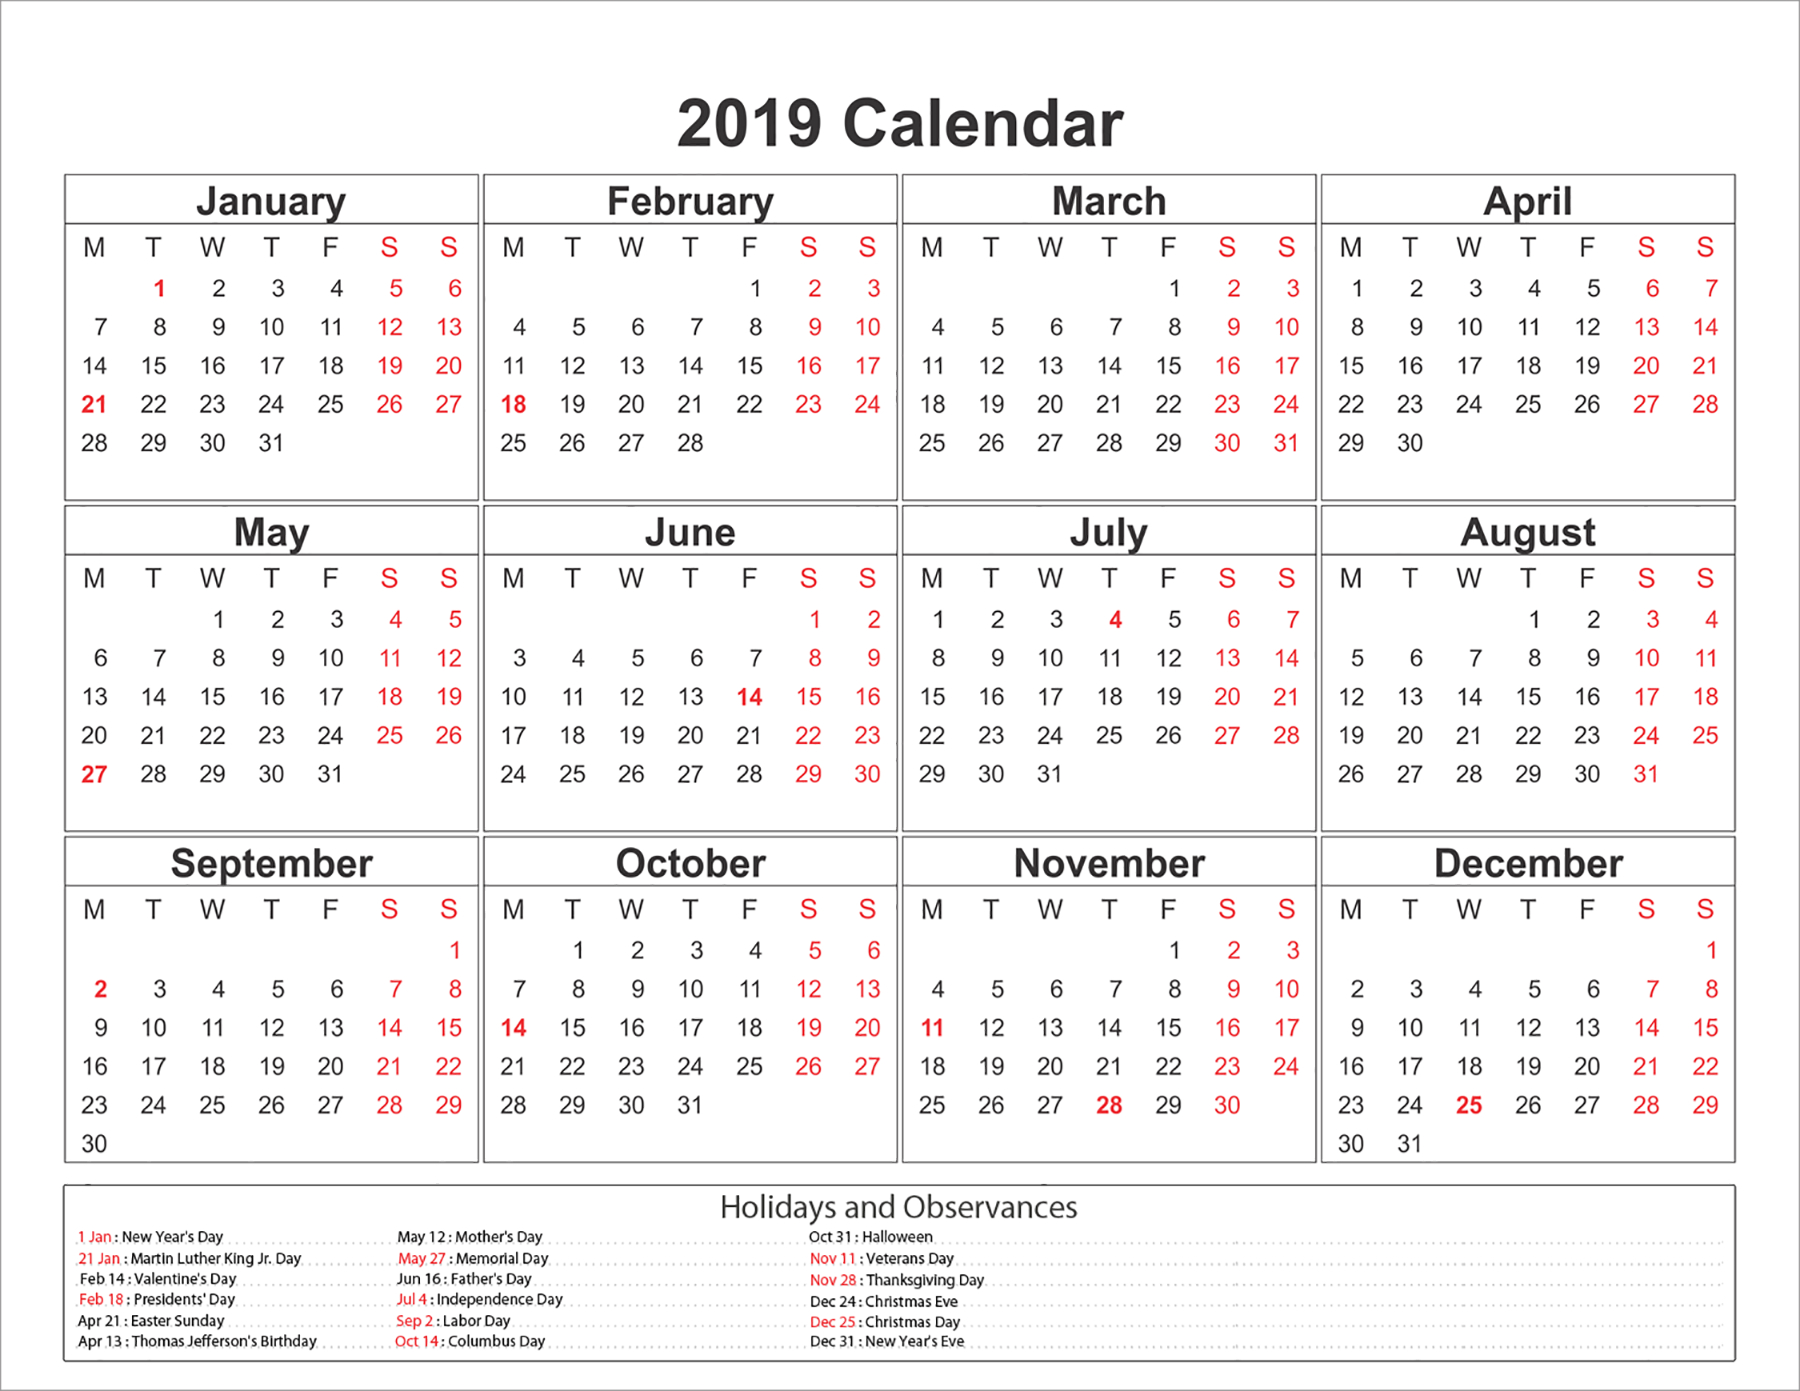 2019 Calendar With 12 Month Template To Print - Printable Monthly inside 12 Month Calendar Template Printable